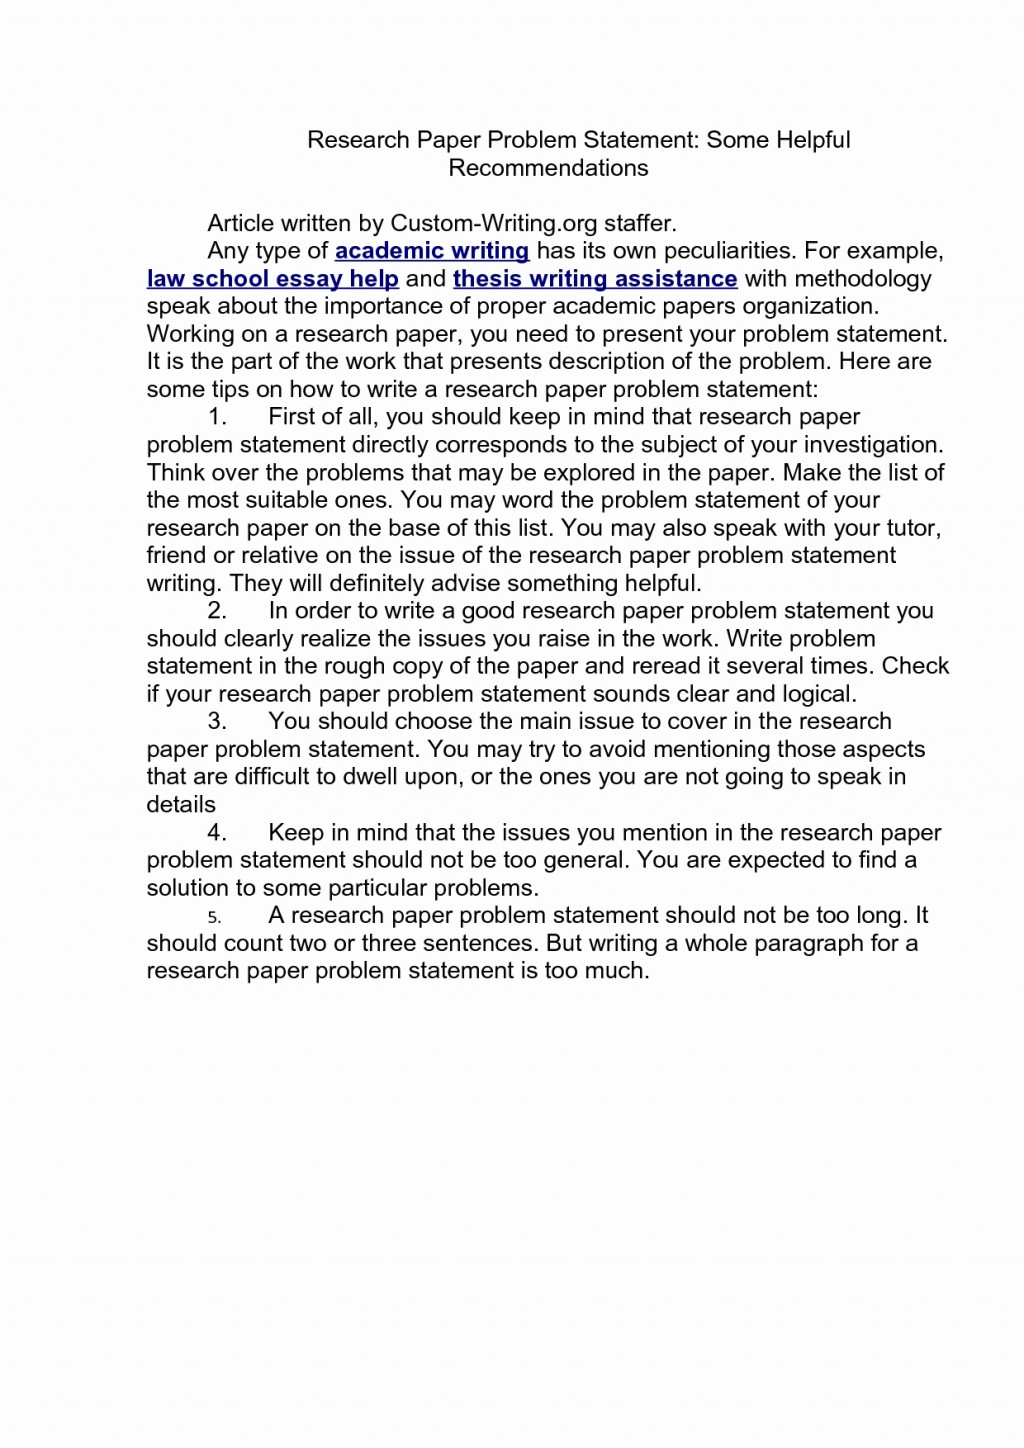 003 Research Paper Example Ofing Proposal Inspirational In Yale Exceptional Of Nursing Large